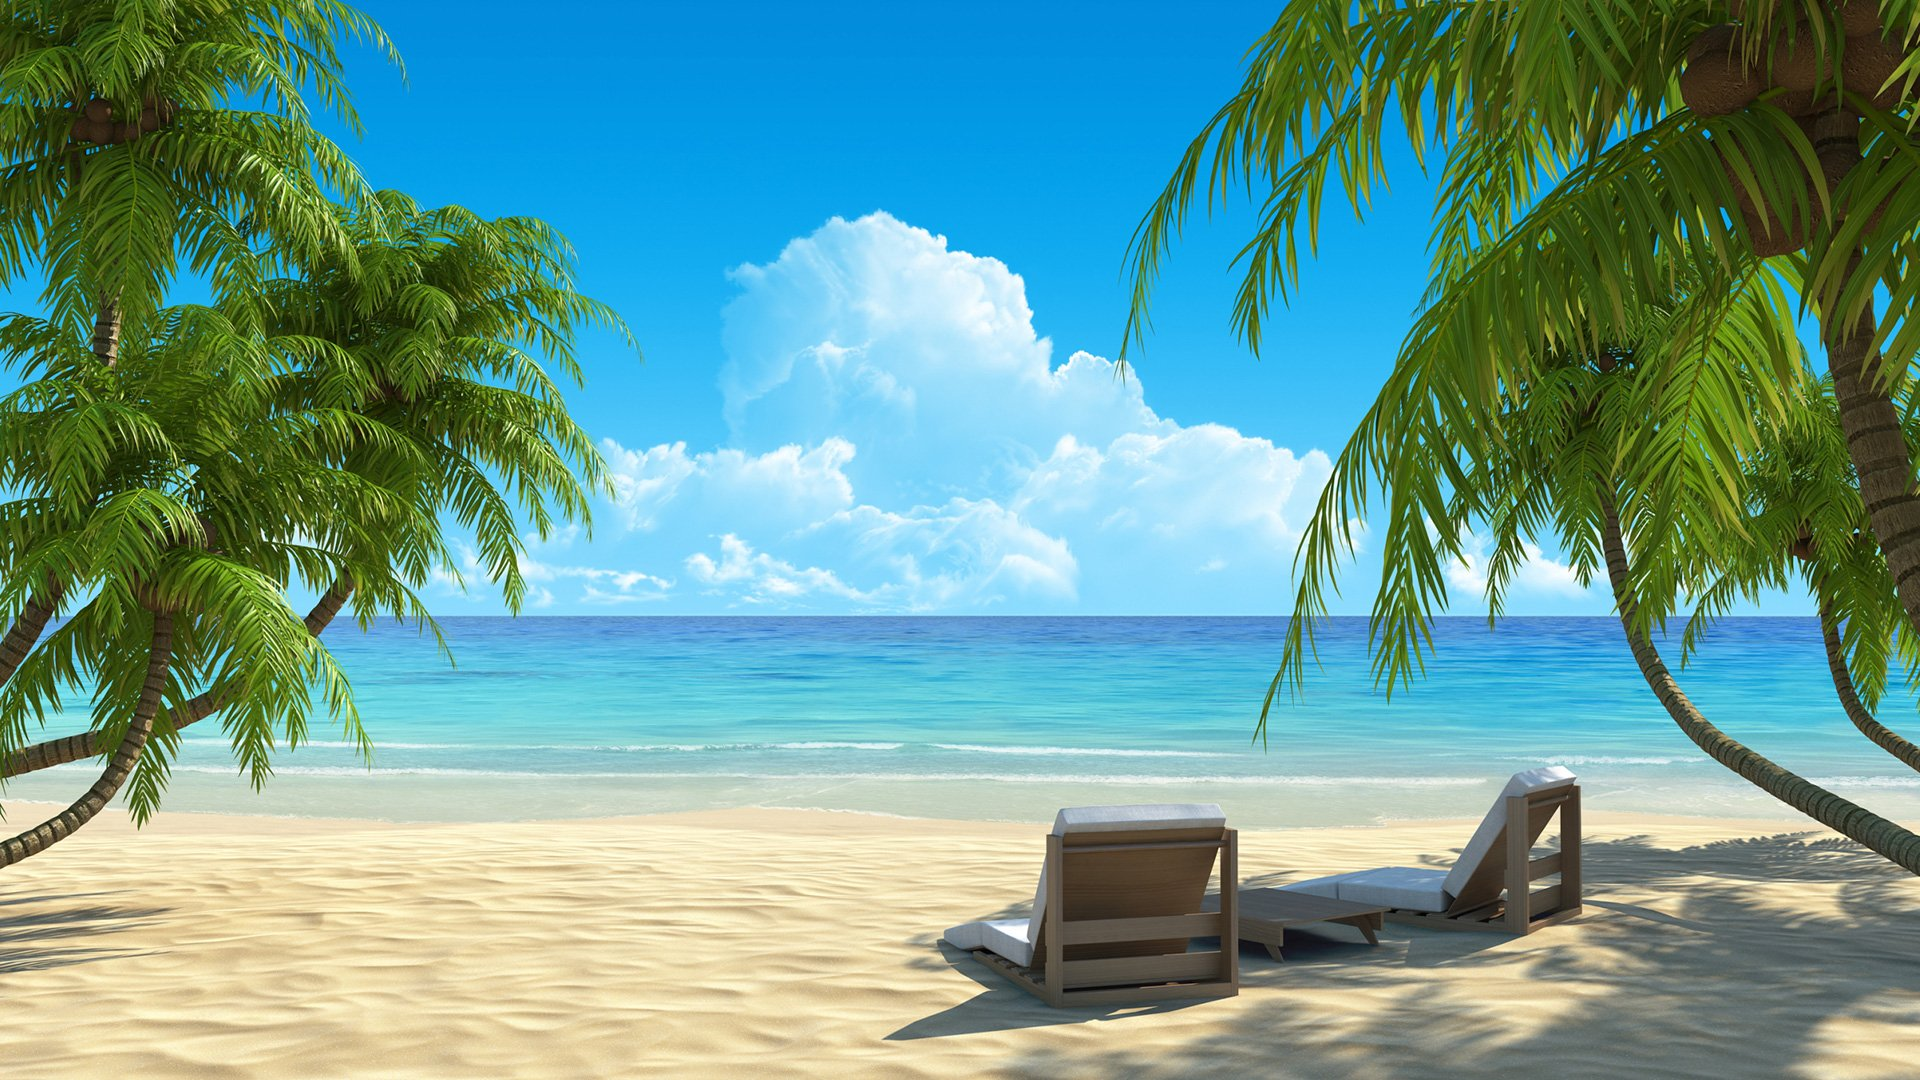 Hd Tropical Island Beach Paradise Wallpapers And Backgrounds: HD Wallpaper Beach Paradise